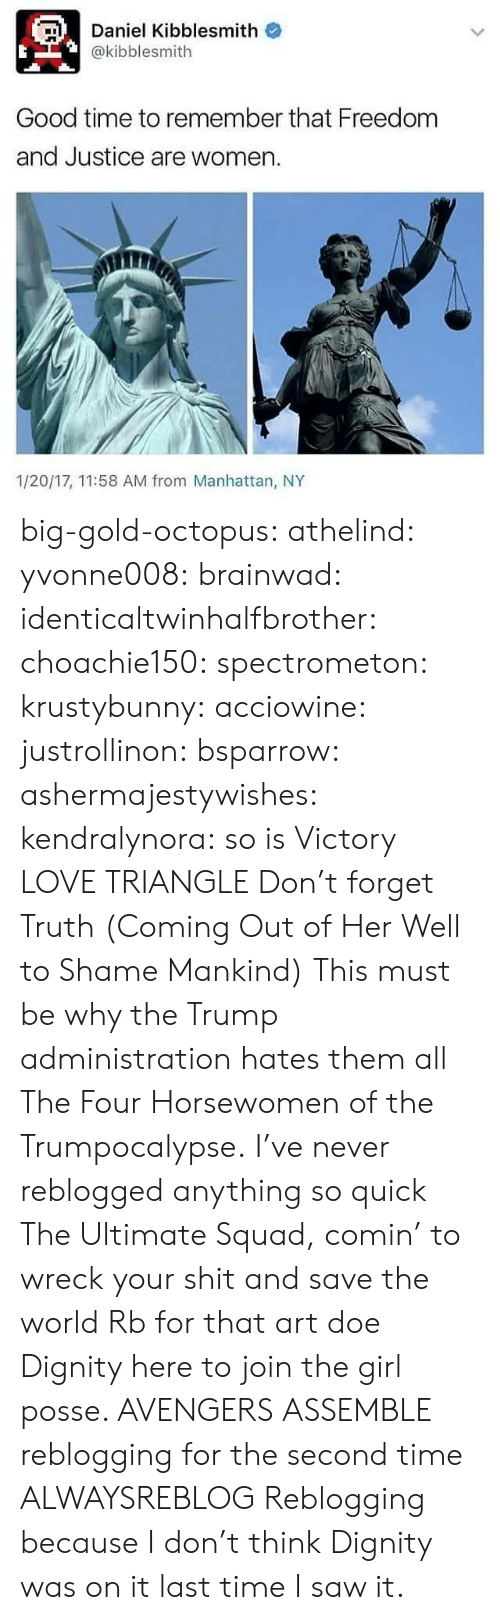 Doe, Love, and Saw: Daniel Kibblesmith o  @kibblesmith  Good time to remember that Freedom  and Justice are women  1/20/17, 11:58 AM from Manhattan, NY big-gold-octopus:   athelind:  yvonne008:  brainwad:  identicaltwinhalfbrother:  choachie150:  spectrometon:  krustybunny:  acciowine:  justrollinon:  bsparrow:  ashermajestywishes:  kendralynora:  so is Victory  LOVE TRIANGLE  Don't forget Truth (Coming Out of Her Well to Shame Mankind)  This must be why the Trump administration hates them all    The Four Horsewomen of the Trumpocalypse.  I've never reblogged anything so quick  The Ultimate Squad, comin' to wreck your shit and save the world   Rb for that art doe  Dignity here to join the girl posse.    AVENGERS ASSEMBLE  reblogging for the second time  ALWAYSREBLOG  Reblogging because I don't think Dignity was on it last time I saw it.